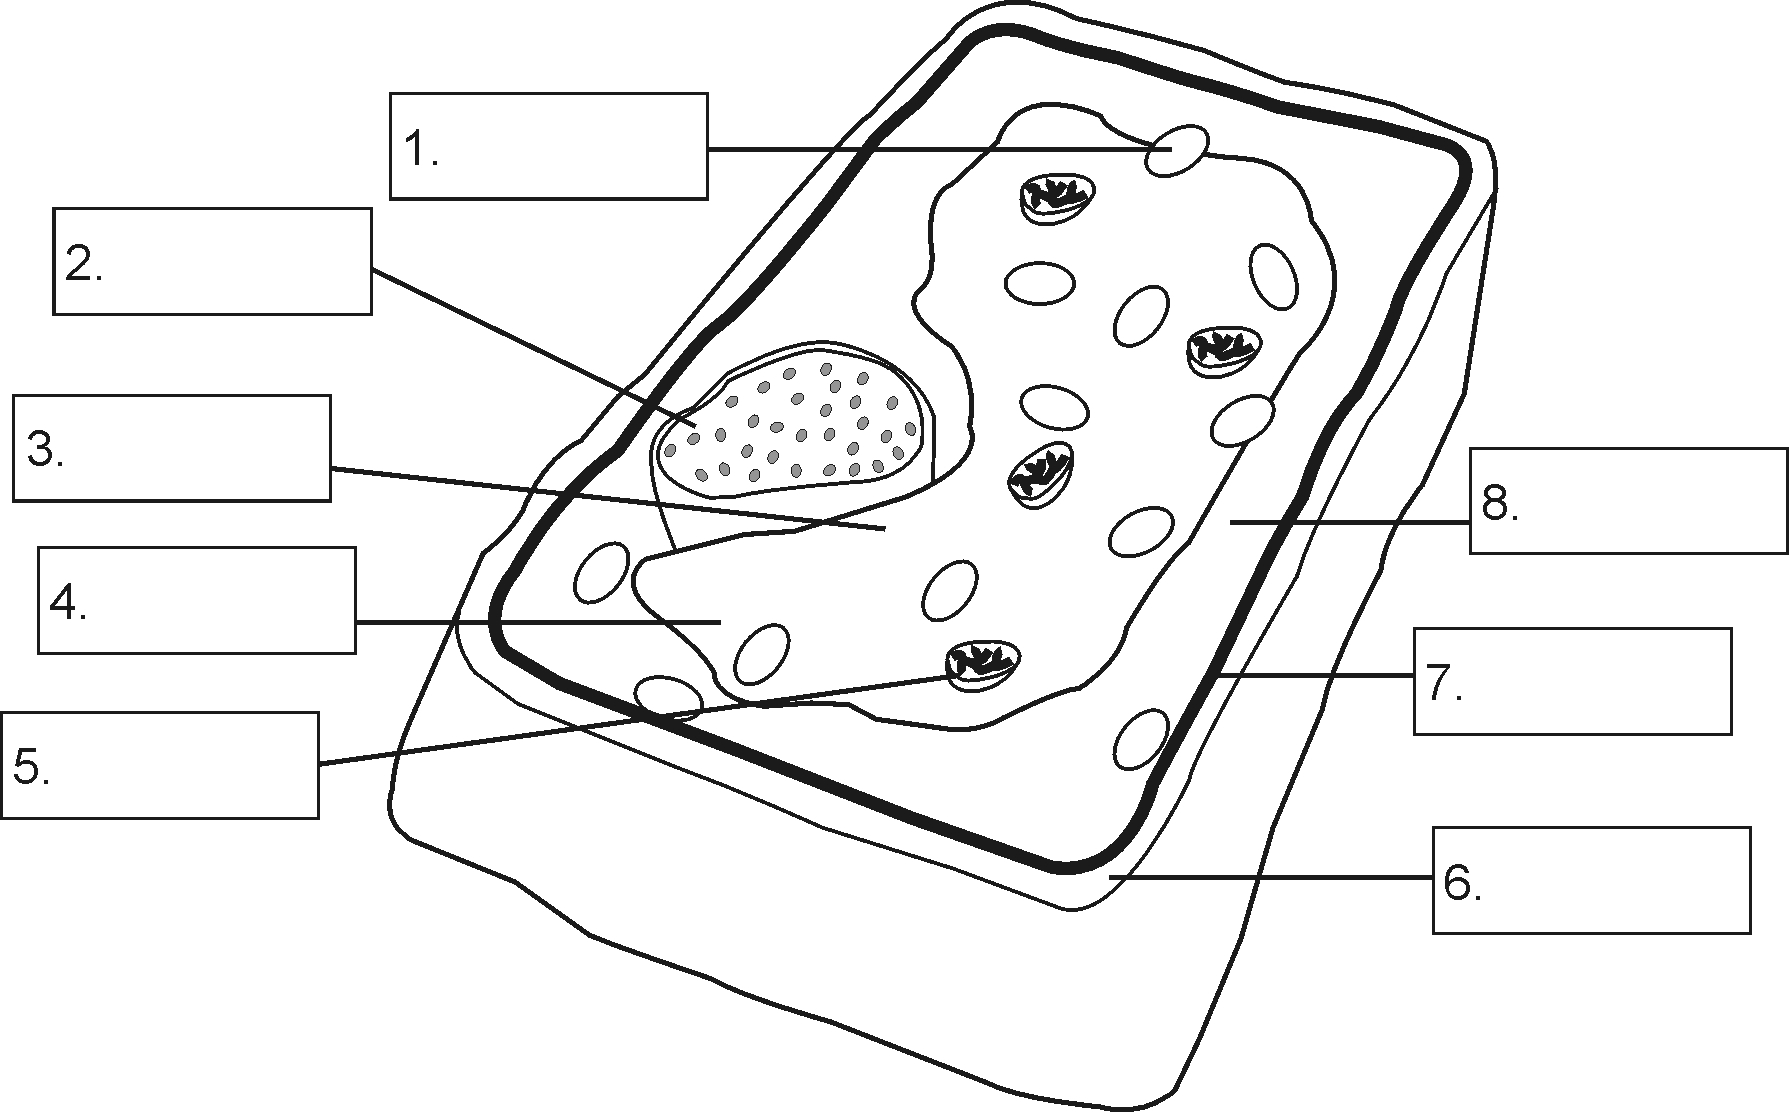 Plant Cell Drawing With Labels At Getdrawings Free For